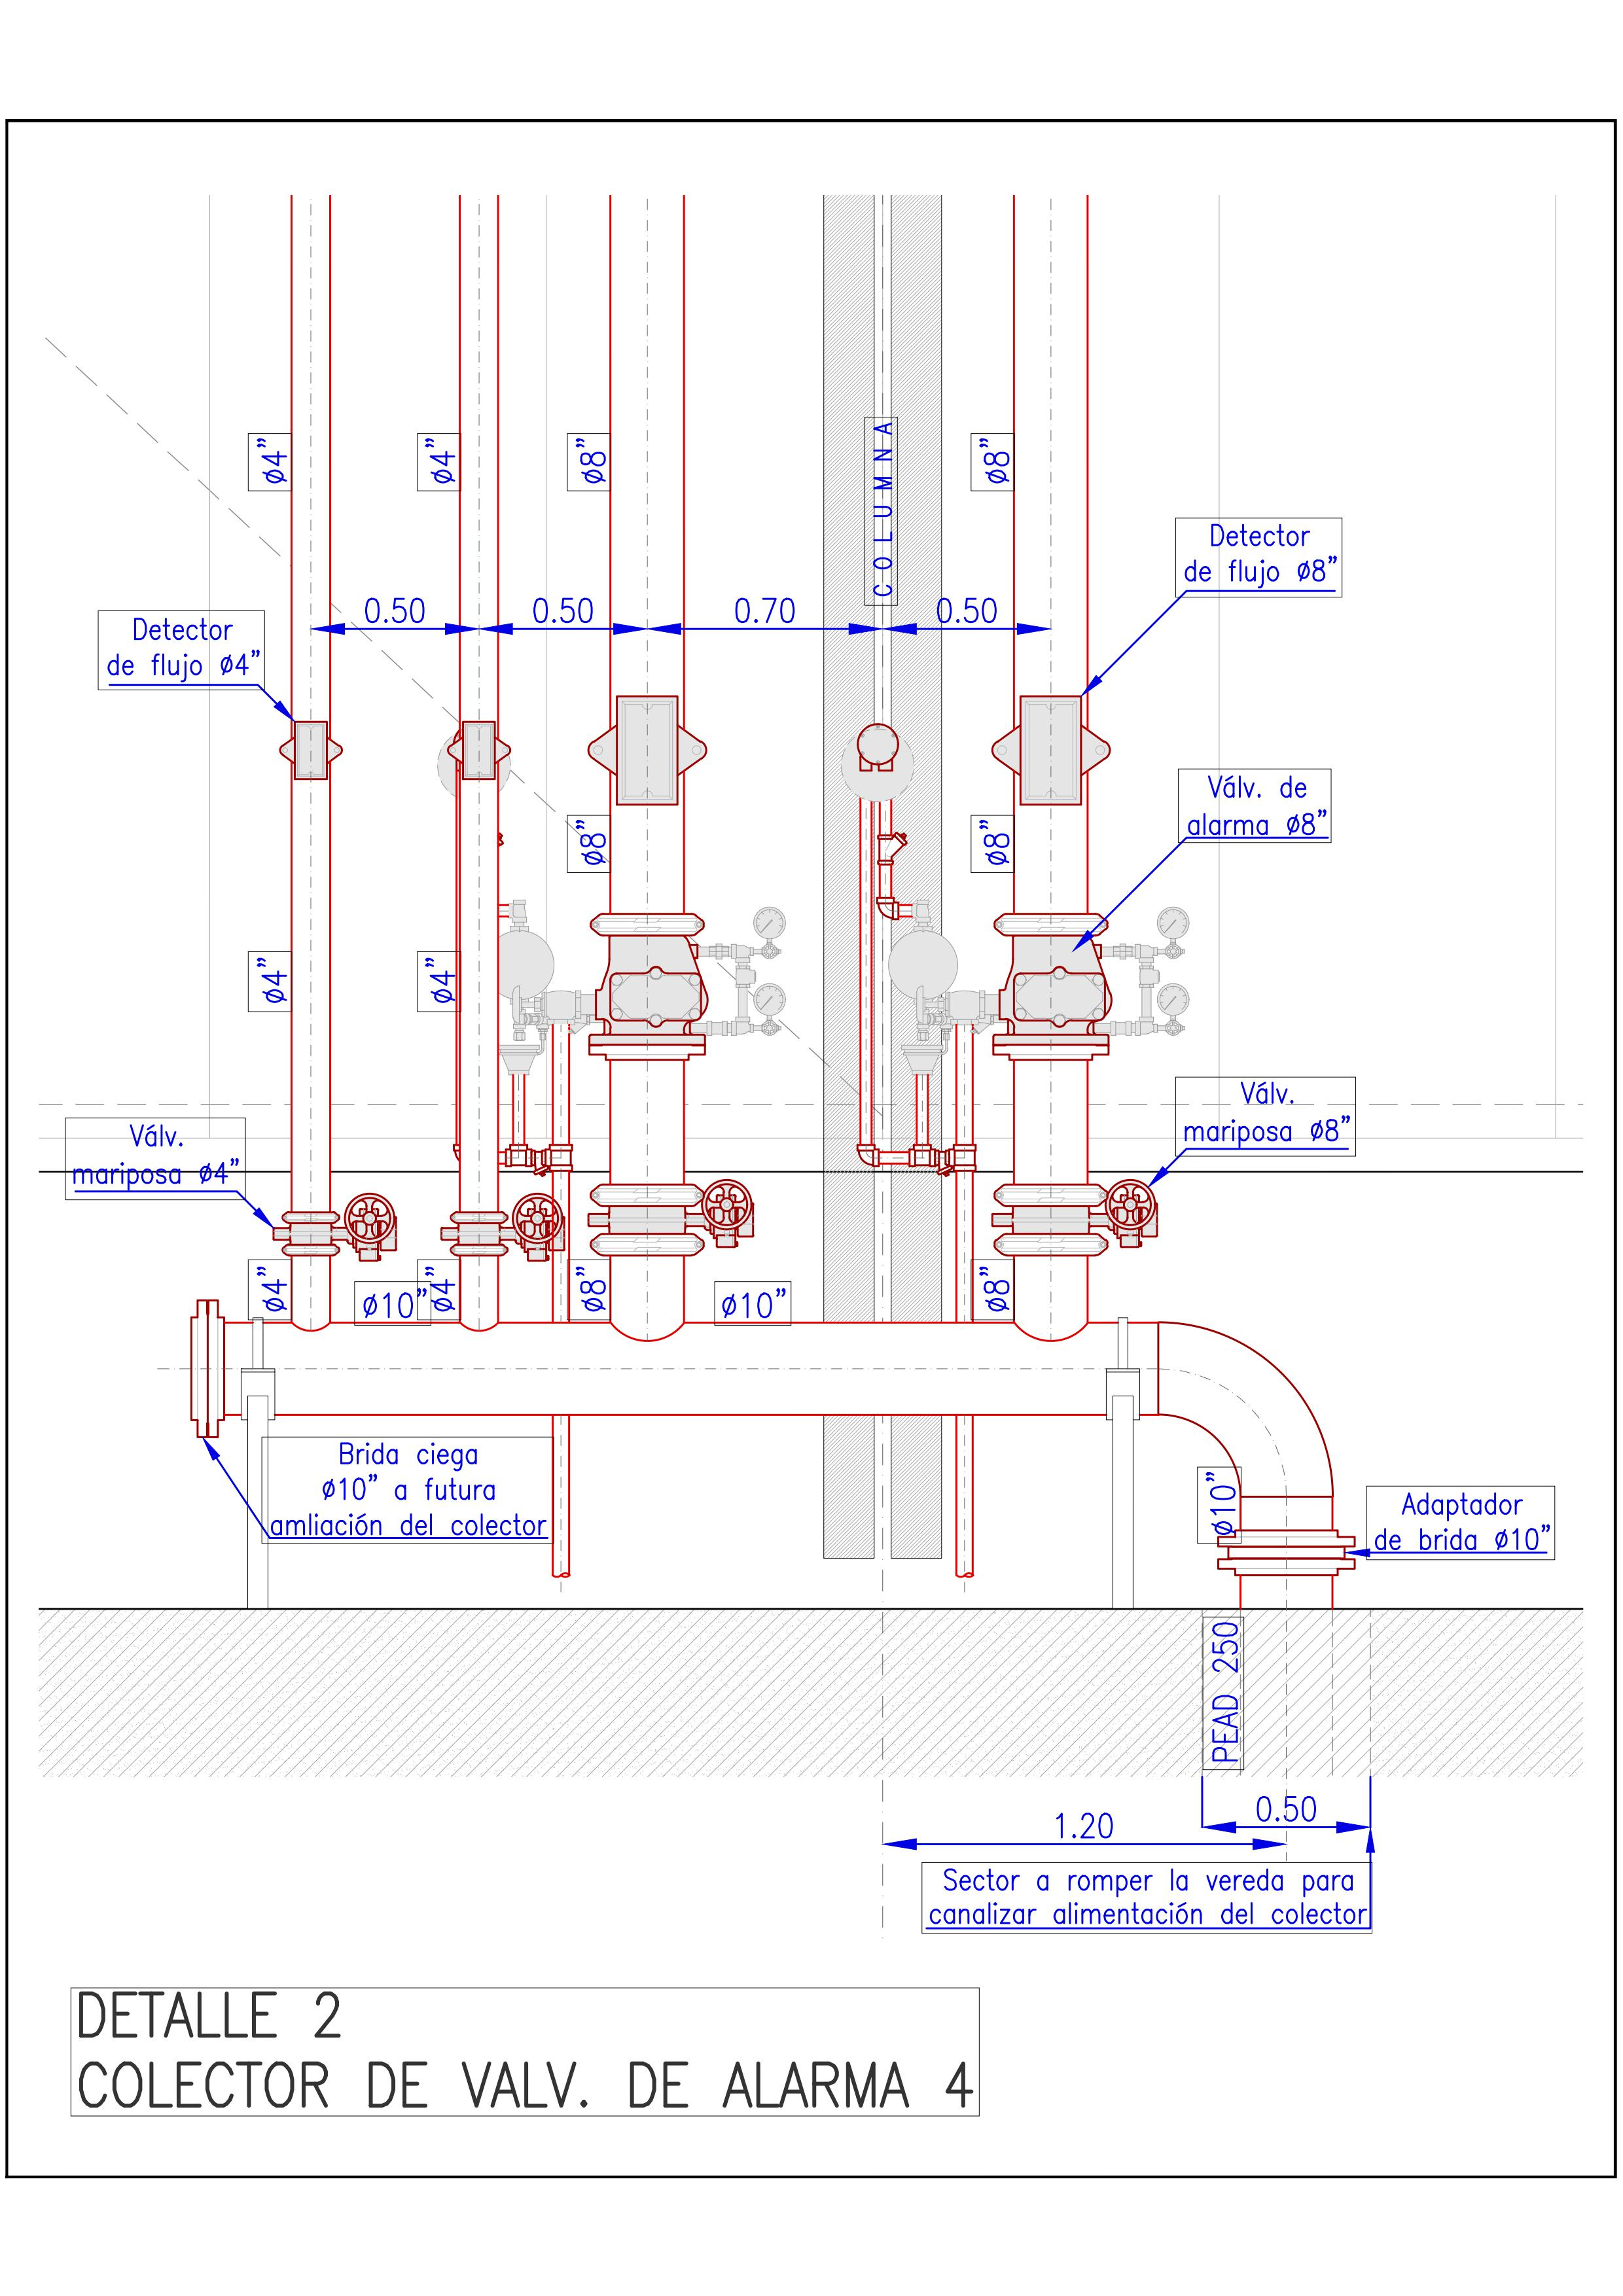 Design And Calculate A Fire Sprinkler System By Pablomackeon,Easy Fabric Design Patterns